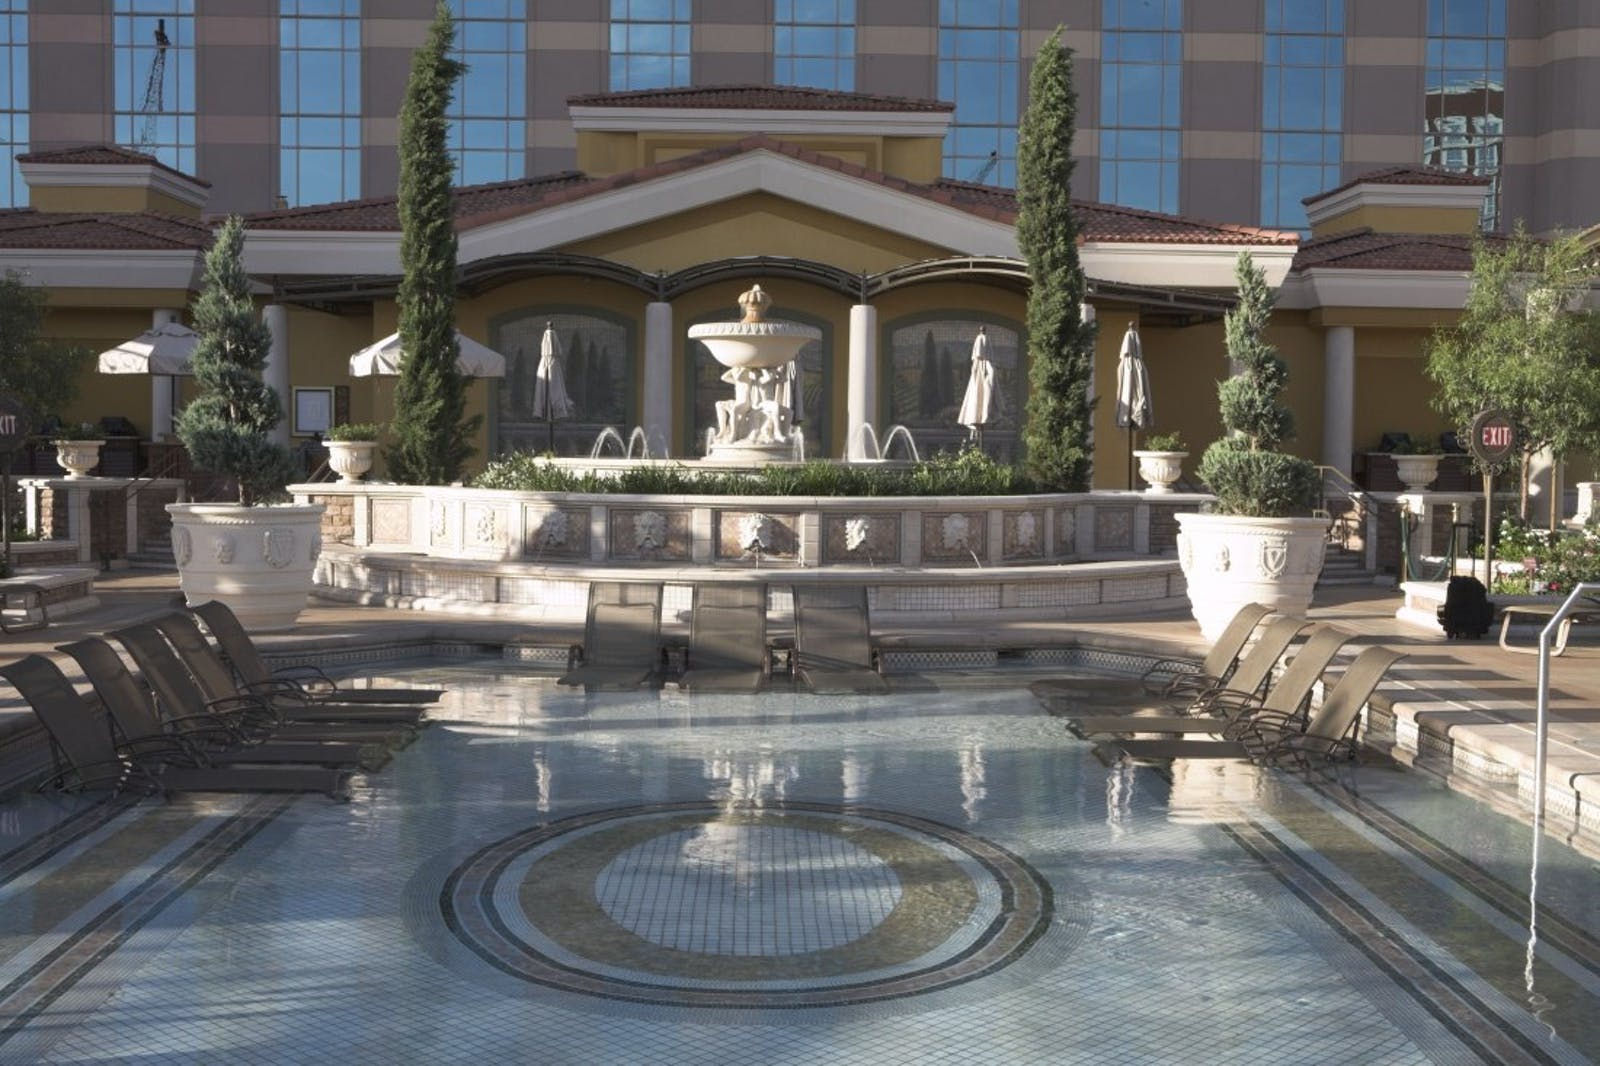 Water Fountain at the Venetian